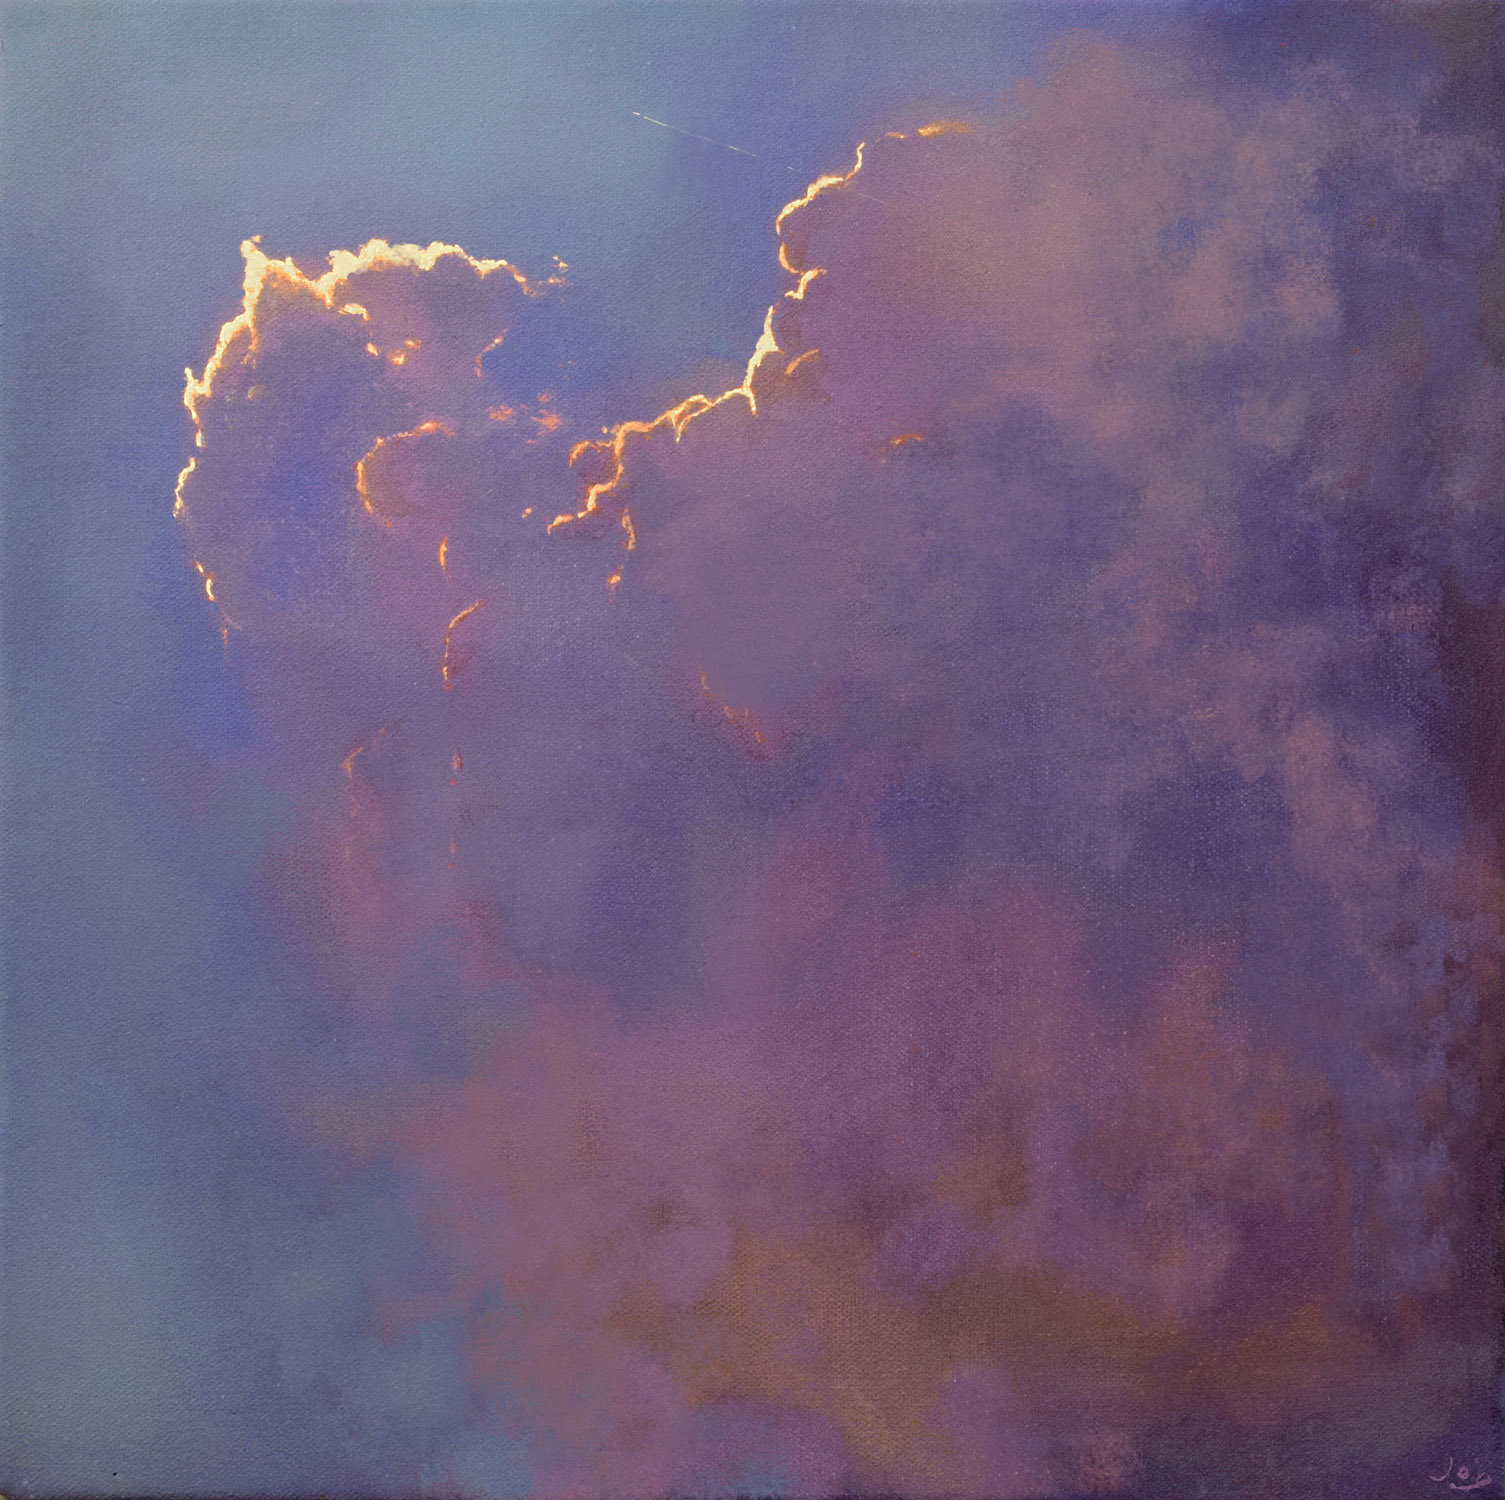 Icarus III by John O'Grady | An atmospheric cloudscape with a brooding sky and clouds edged with gold